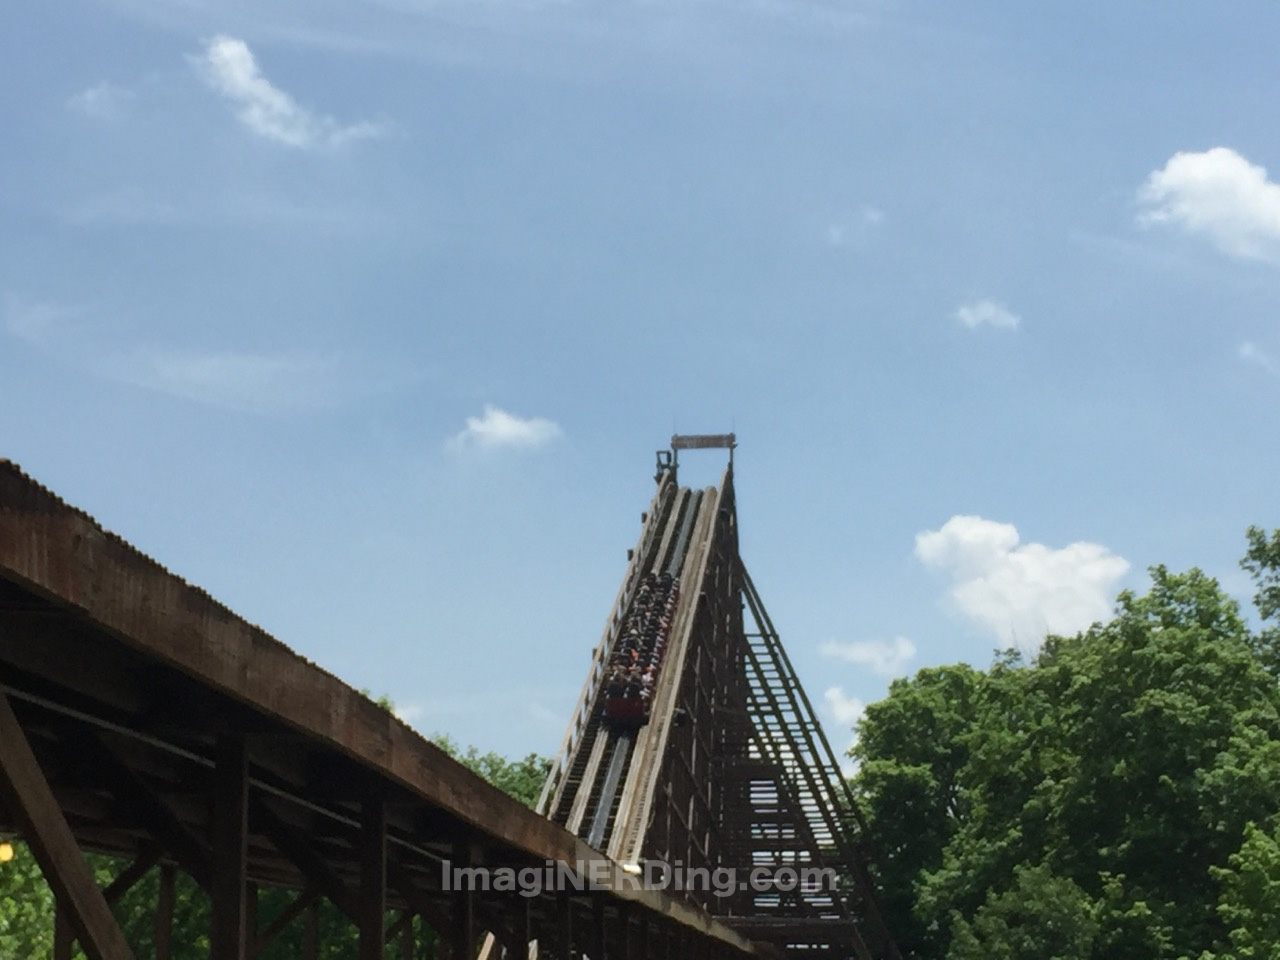 kings island roller coasters imaginerding